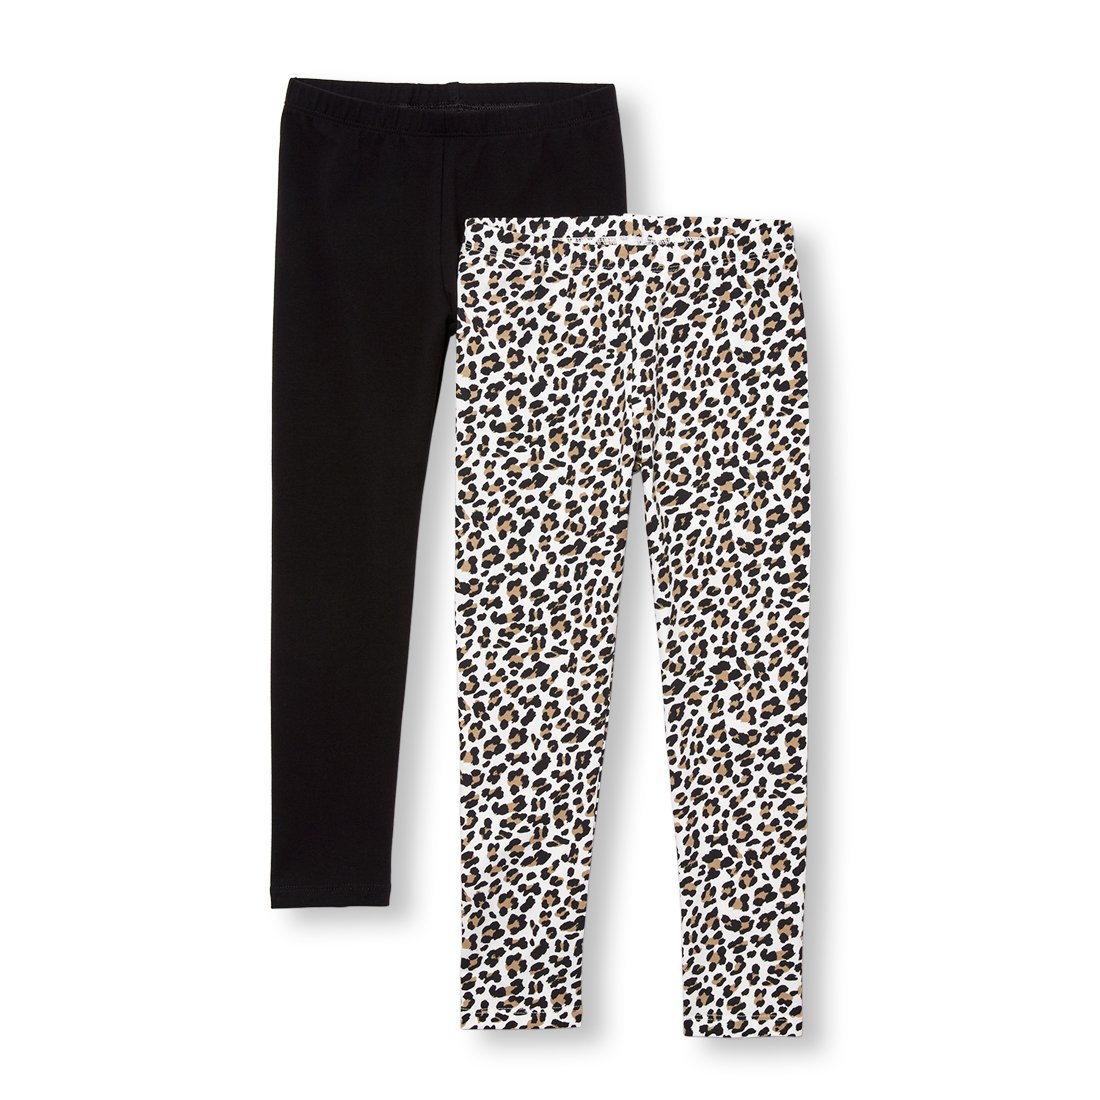 The Children's Place Big Girls' 2 Pack Legging, Tumbleweed, L (10/12) by The Children's Place (Image #1)